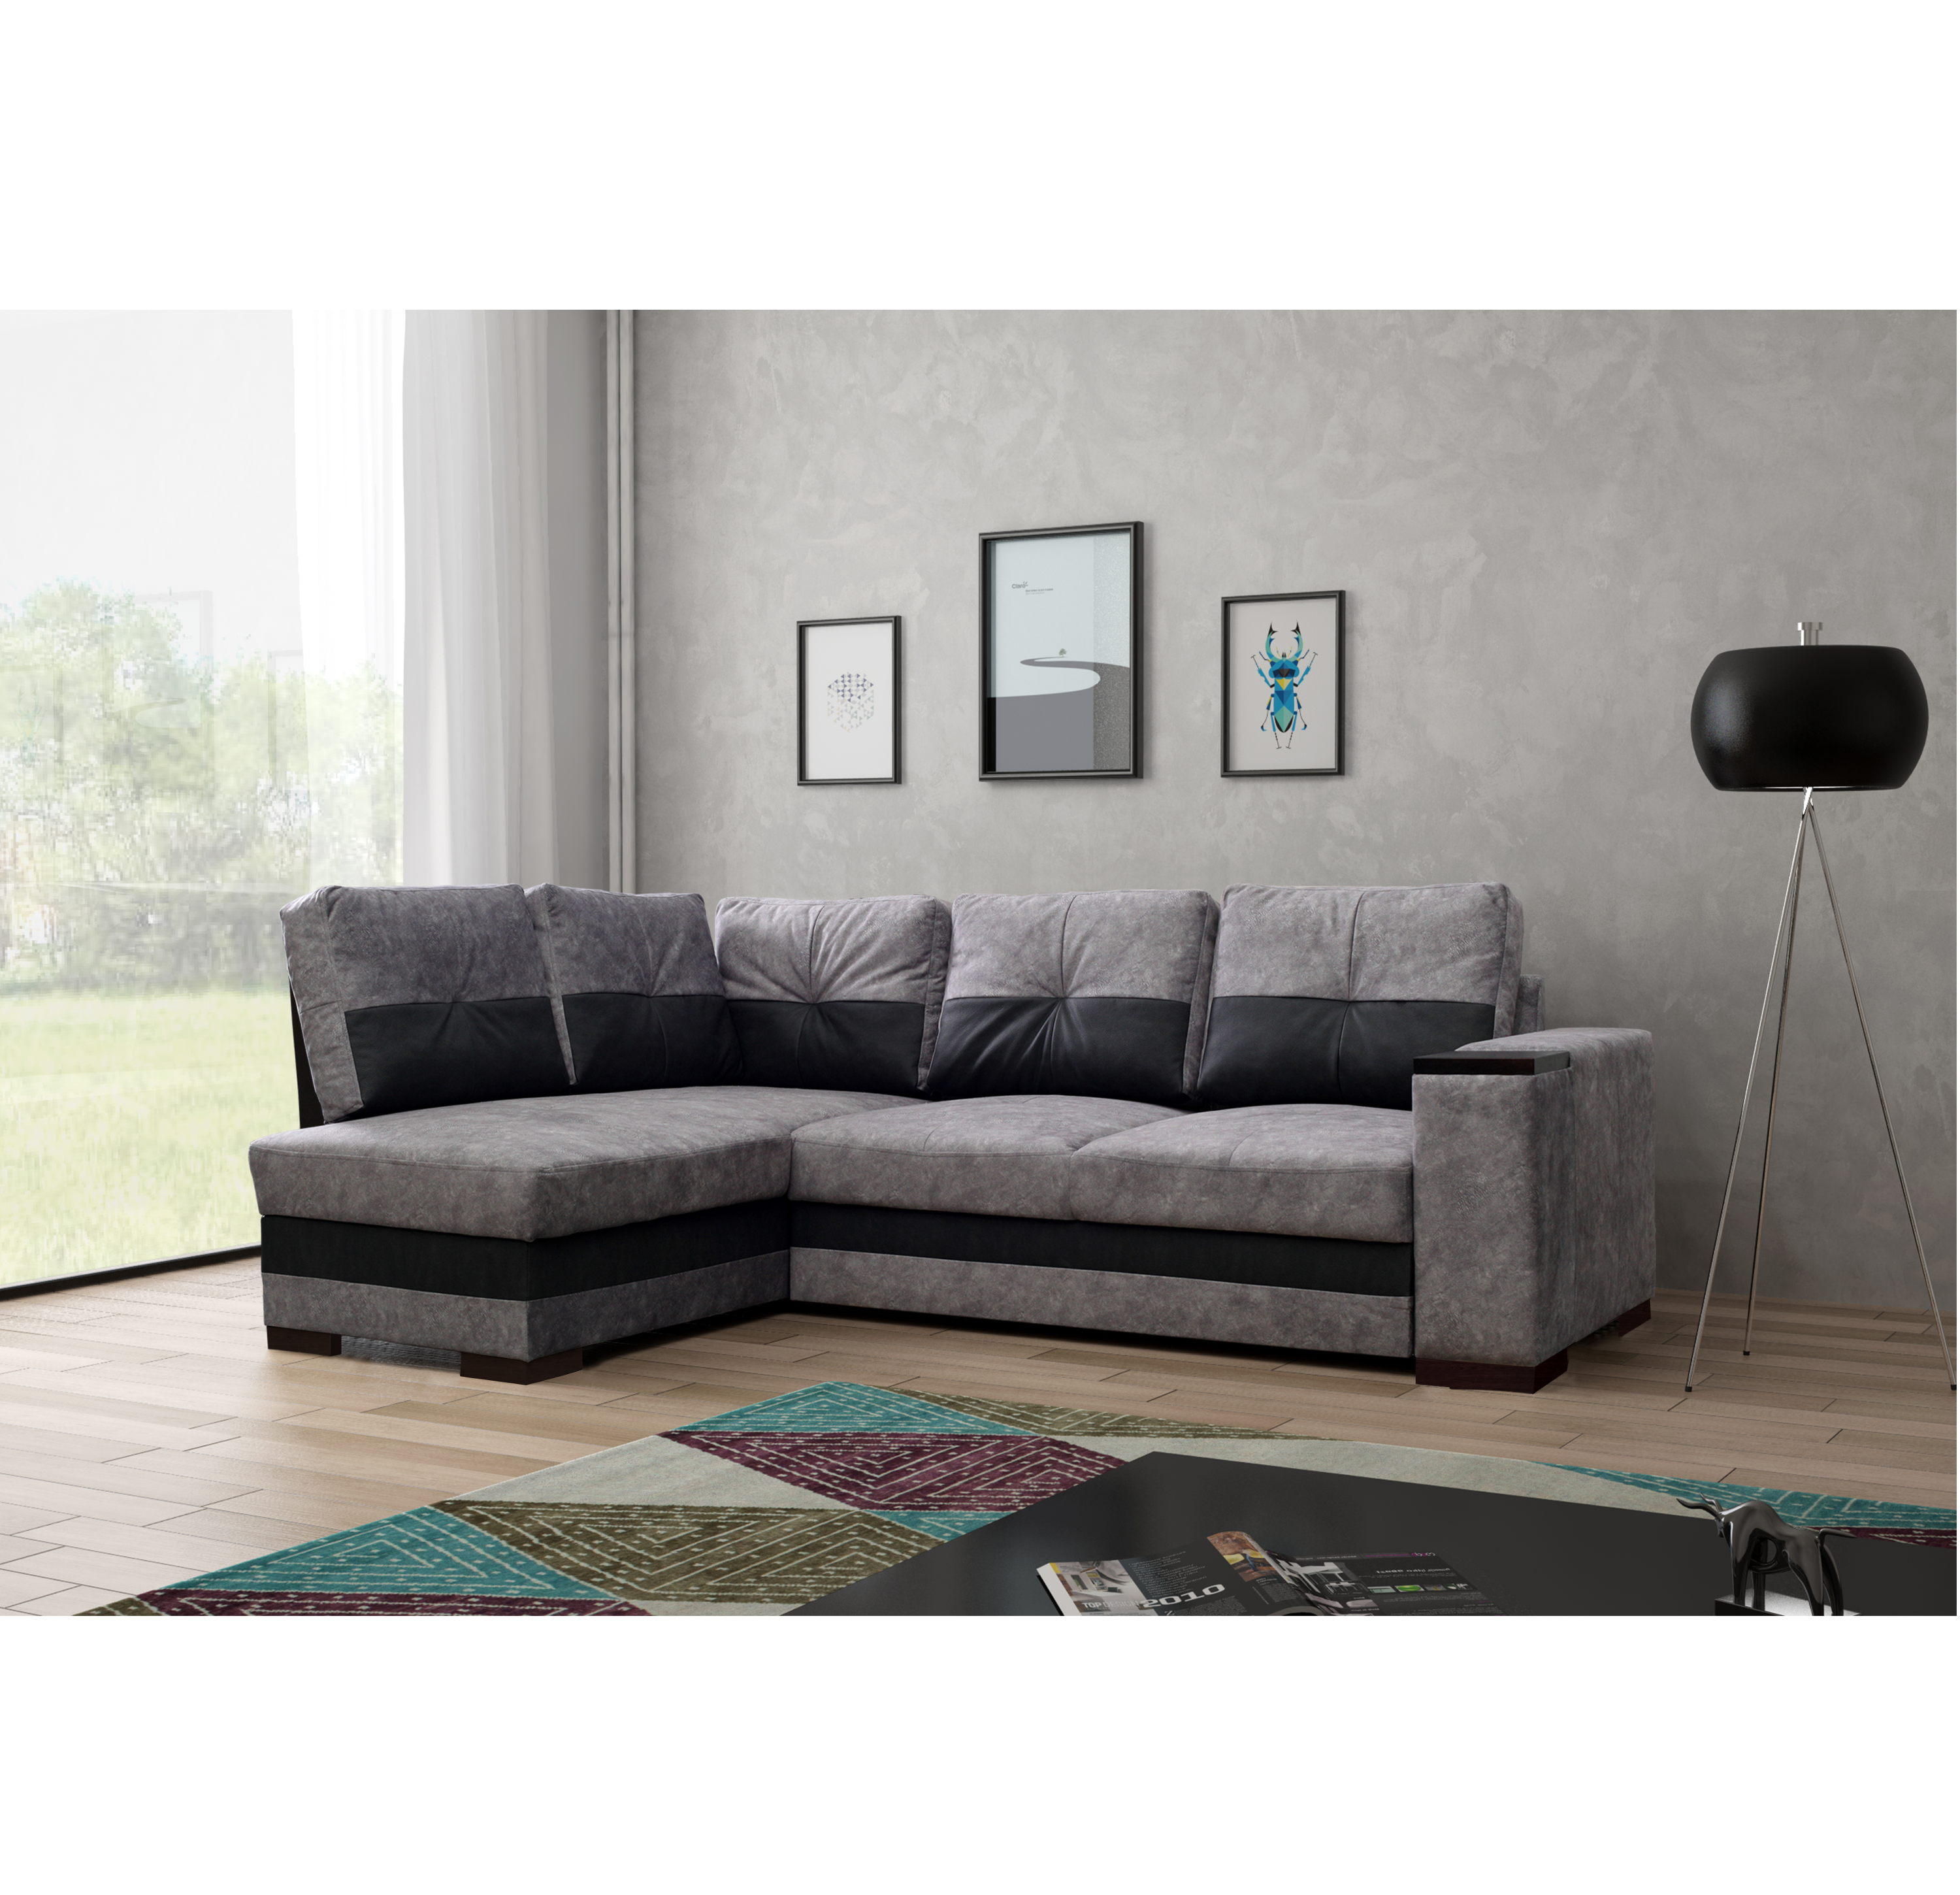 ecksofa miami grau m bel muller braun. Black Bedroom Furniture Sets. Home Design Ideas